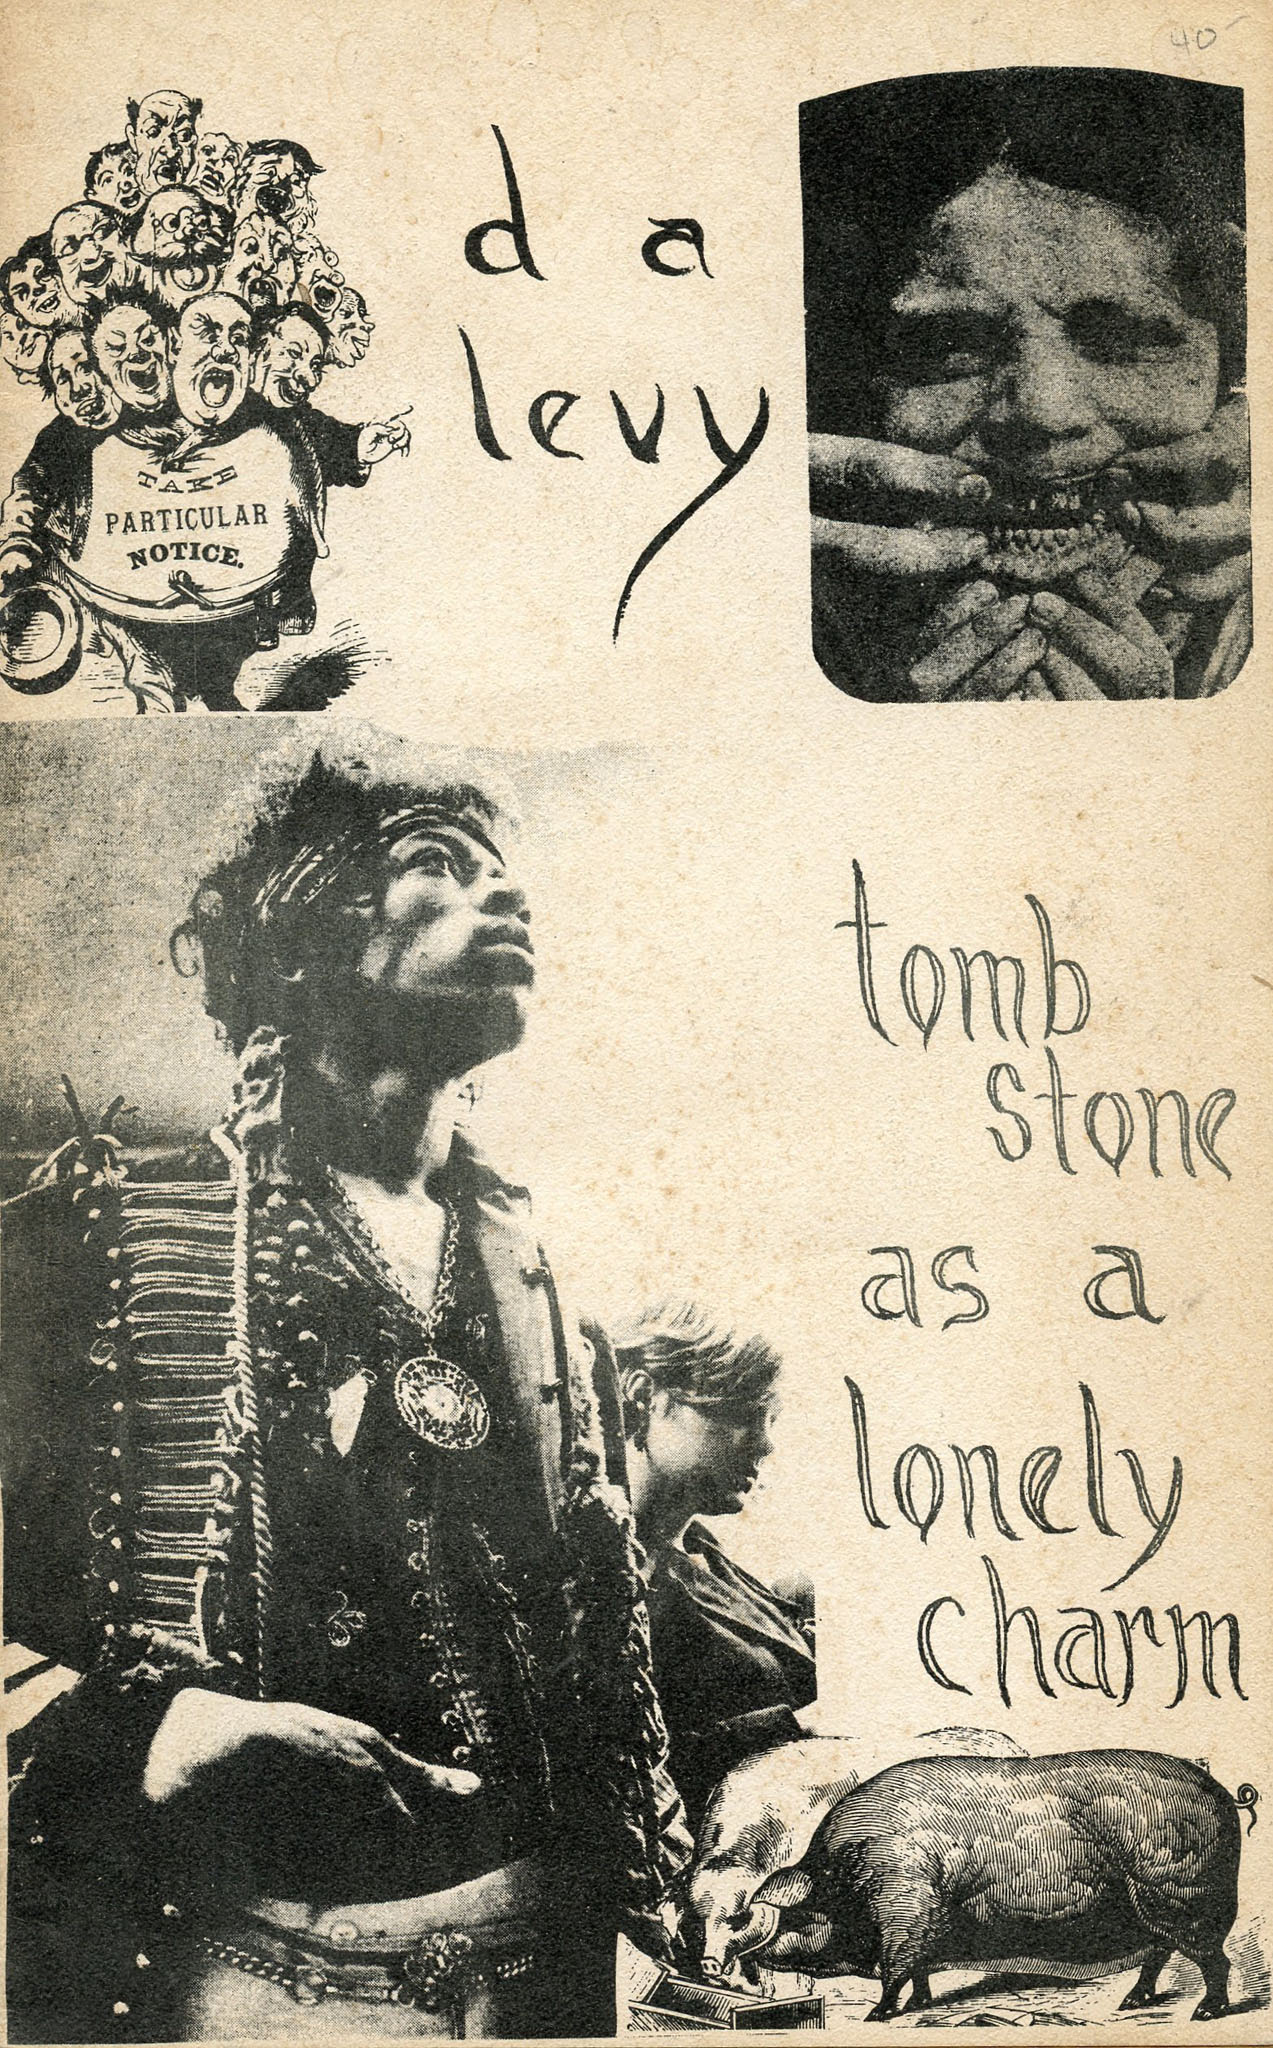 Image for tomb stone as a lonely charm